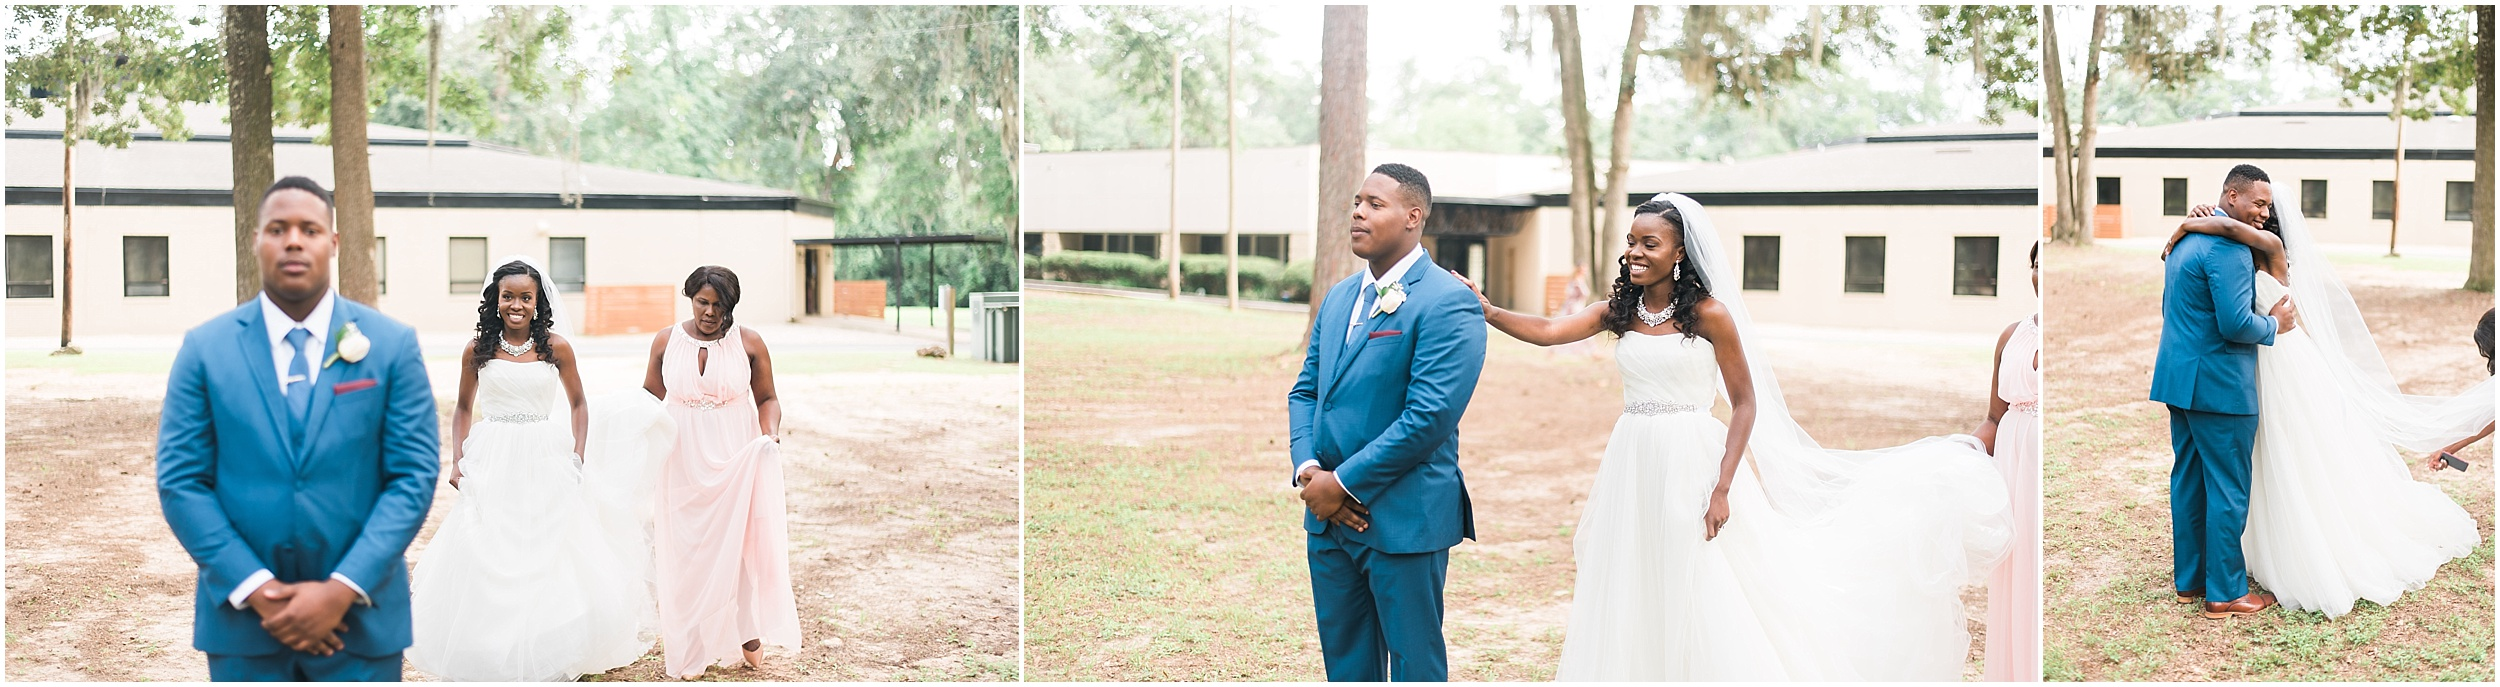 Tallahassee Florida Wedding Photographer, Therline & Jerry Wedding at Restoration Place, Tallahassee Florida_0018.jpg